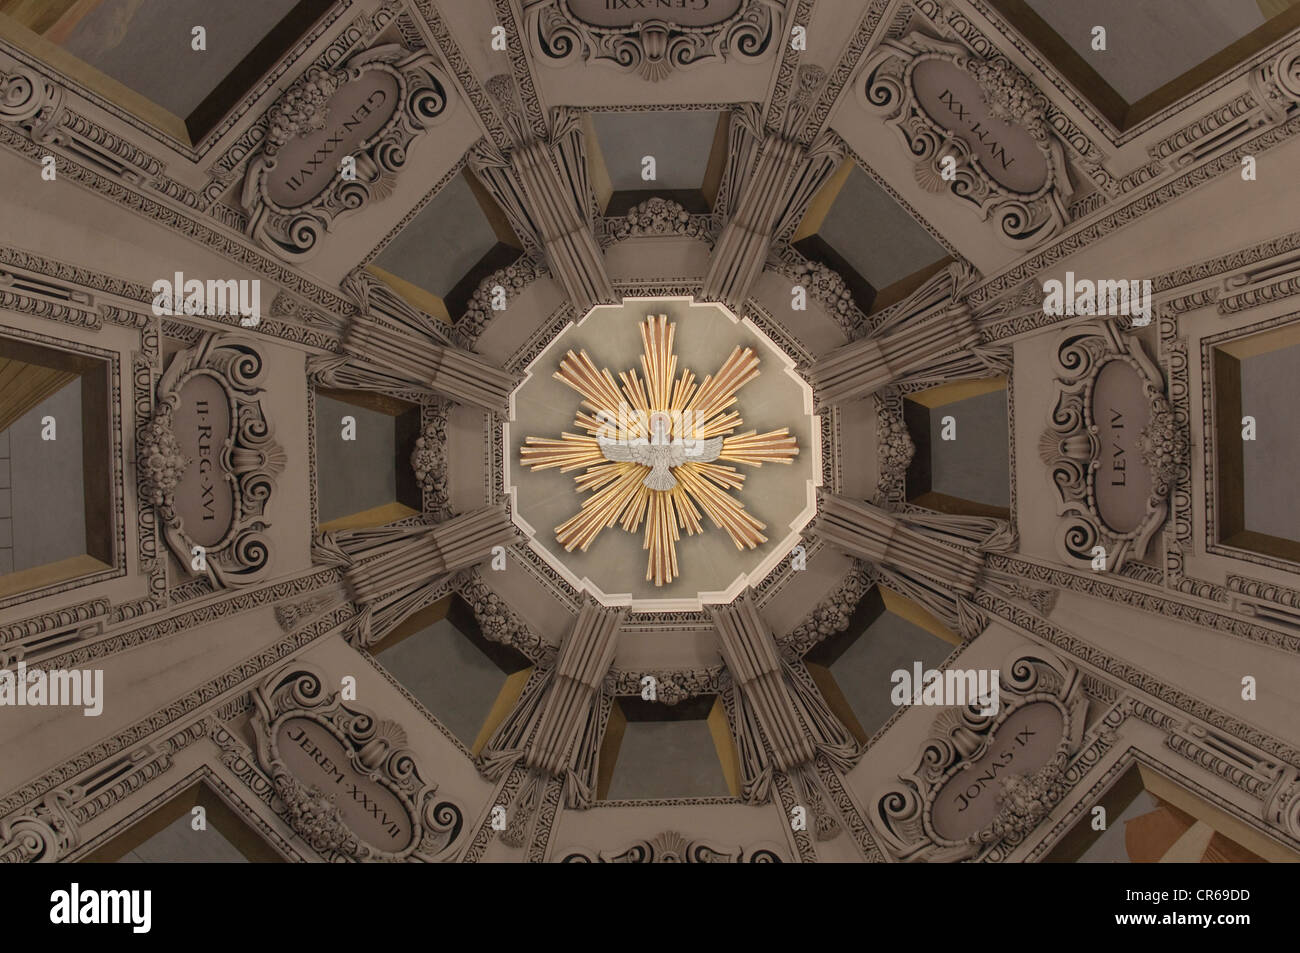 View of the main tower of Salzburg Cathedral, the central white dove as a symbol of the Holy Spirit, Salzburg, Austria, - Stock Image